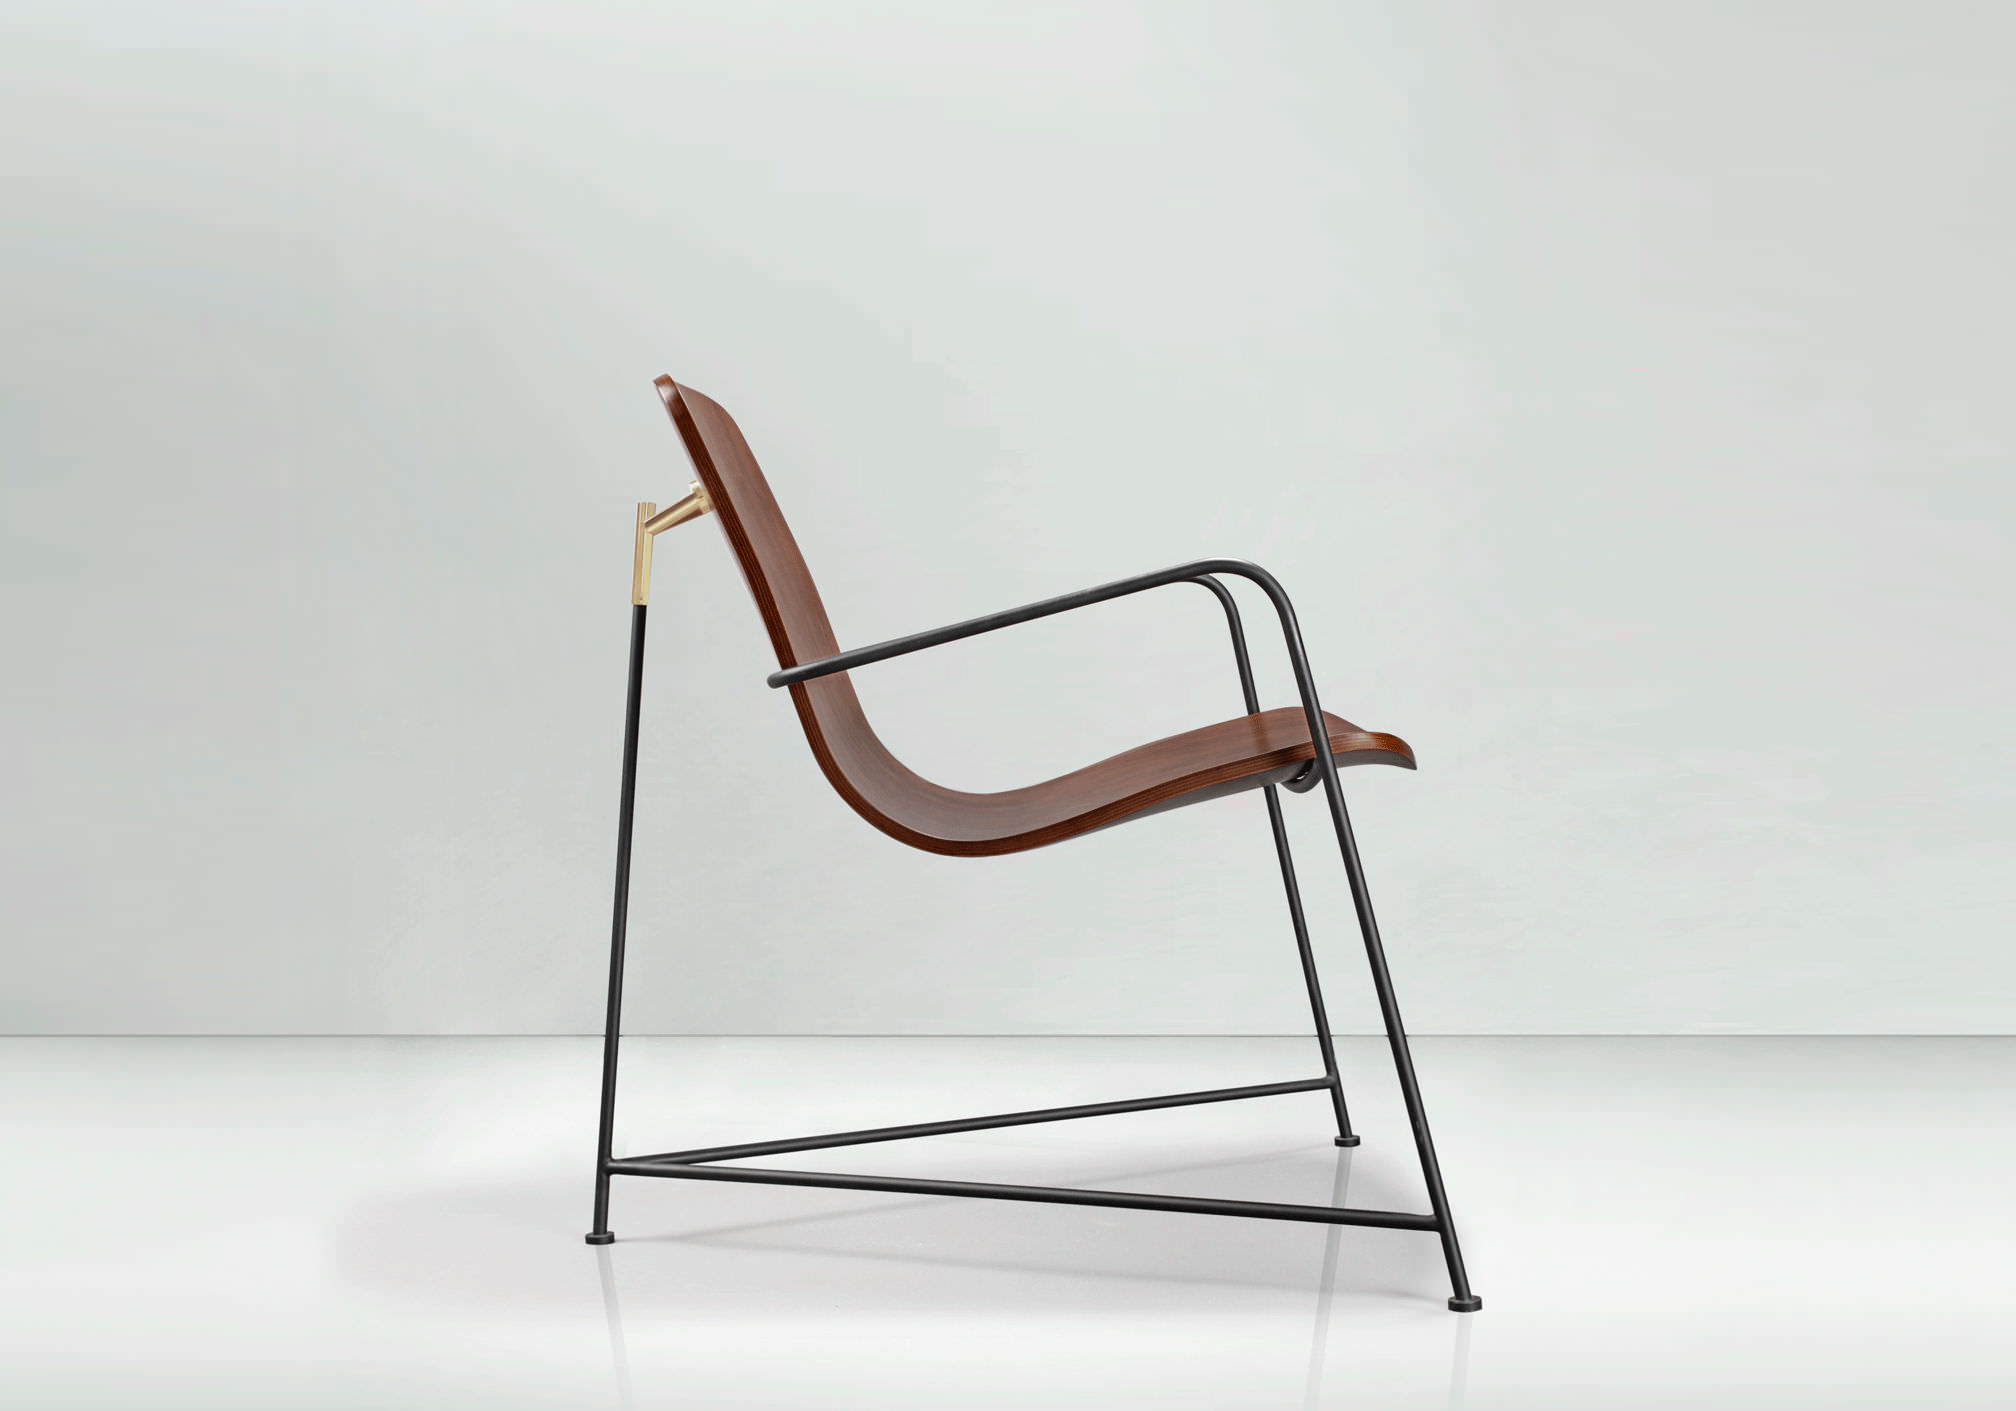 contemporary chair  molded plywood  with armrests  wang  munkii -  contemporary chair  molded plywood  with armrests wang munkii